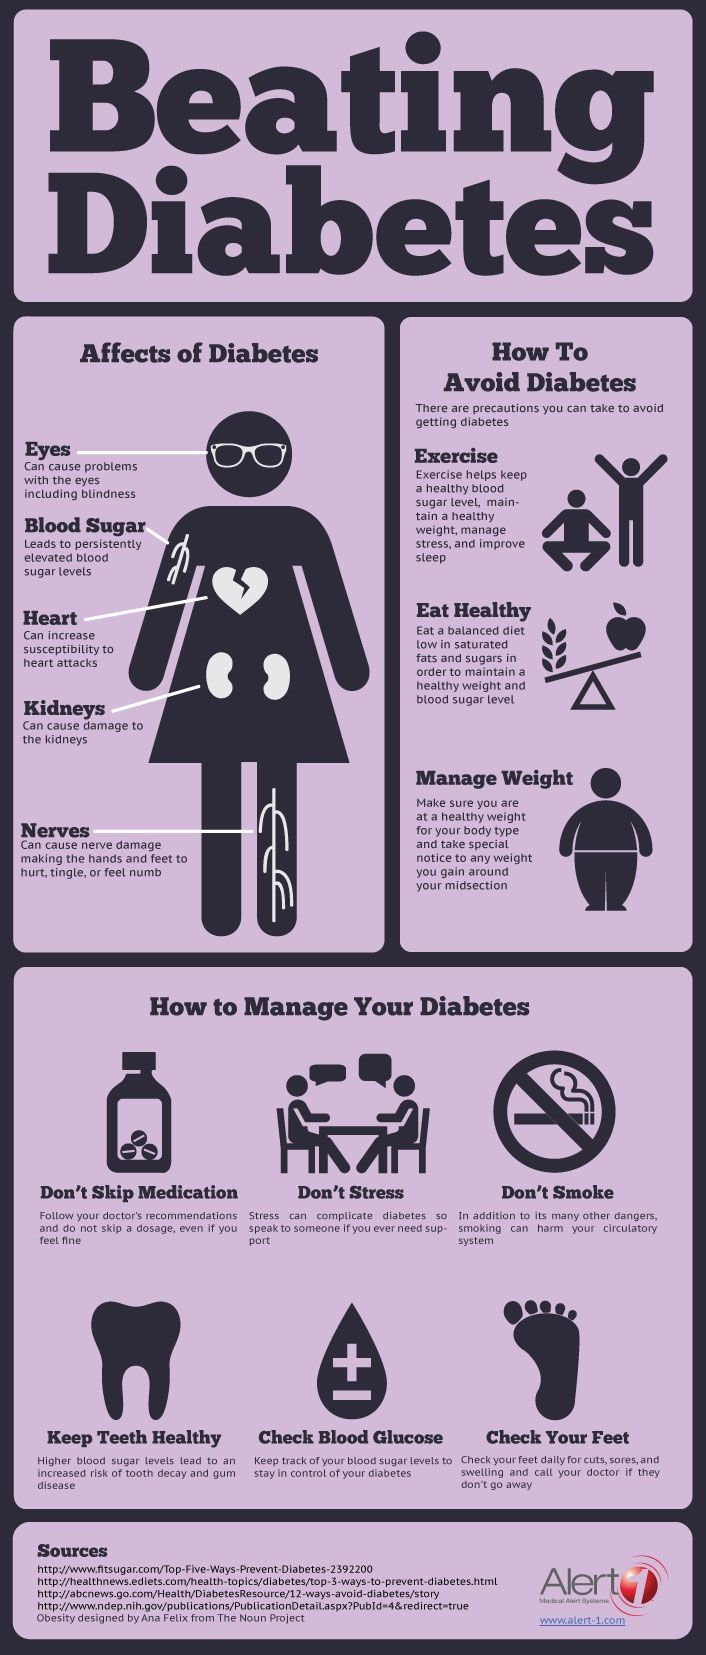 "Beating Diabetes Infographic by Personal Alert Systems:     According to other research, performing a mixture of aerobic fitness exercise and strength training is linked to improved glycemic levels with type 2 diabetes patients in comparison to patients who don't exercise. Read the full article here: ""Aerobic Exercise and Resistance Training Combination for Diabetes"""